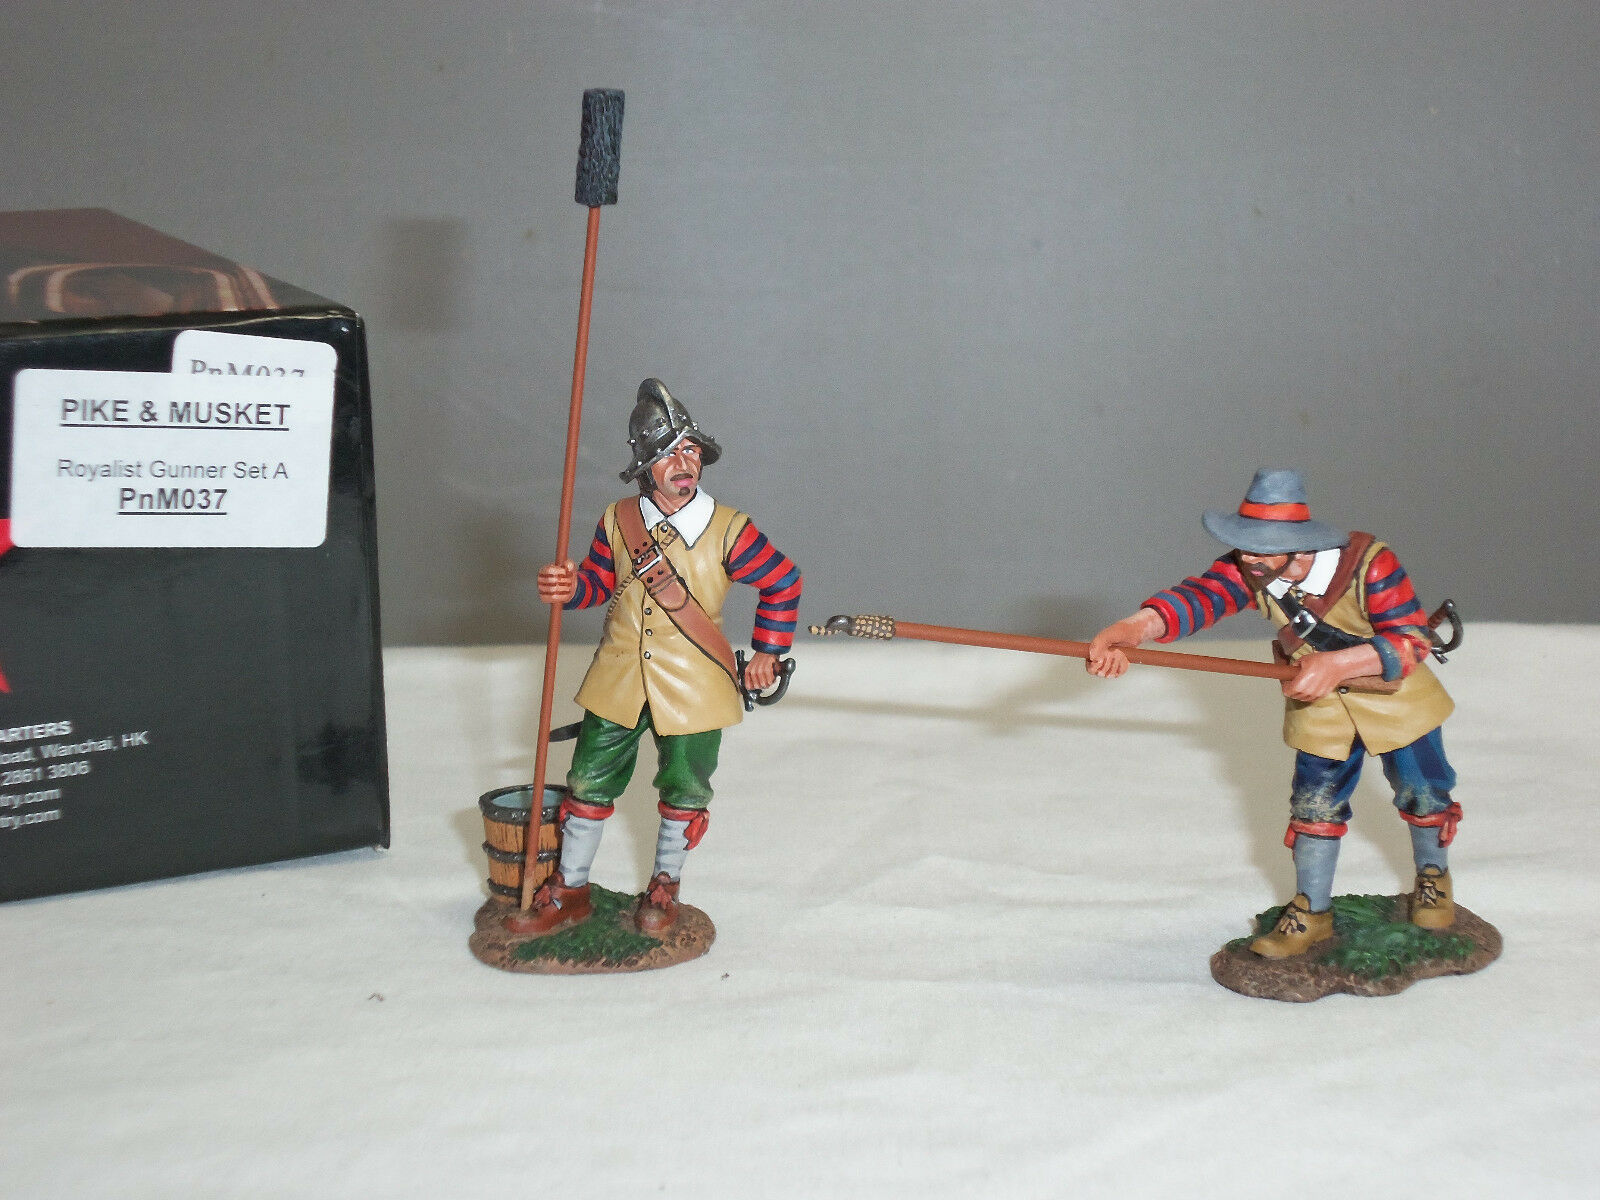 KING AND COUNTRY PNM037 ENGLISH CIVIL WAR ROYALIST CANNON GUN GUNNERS SET A